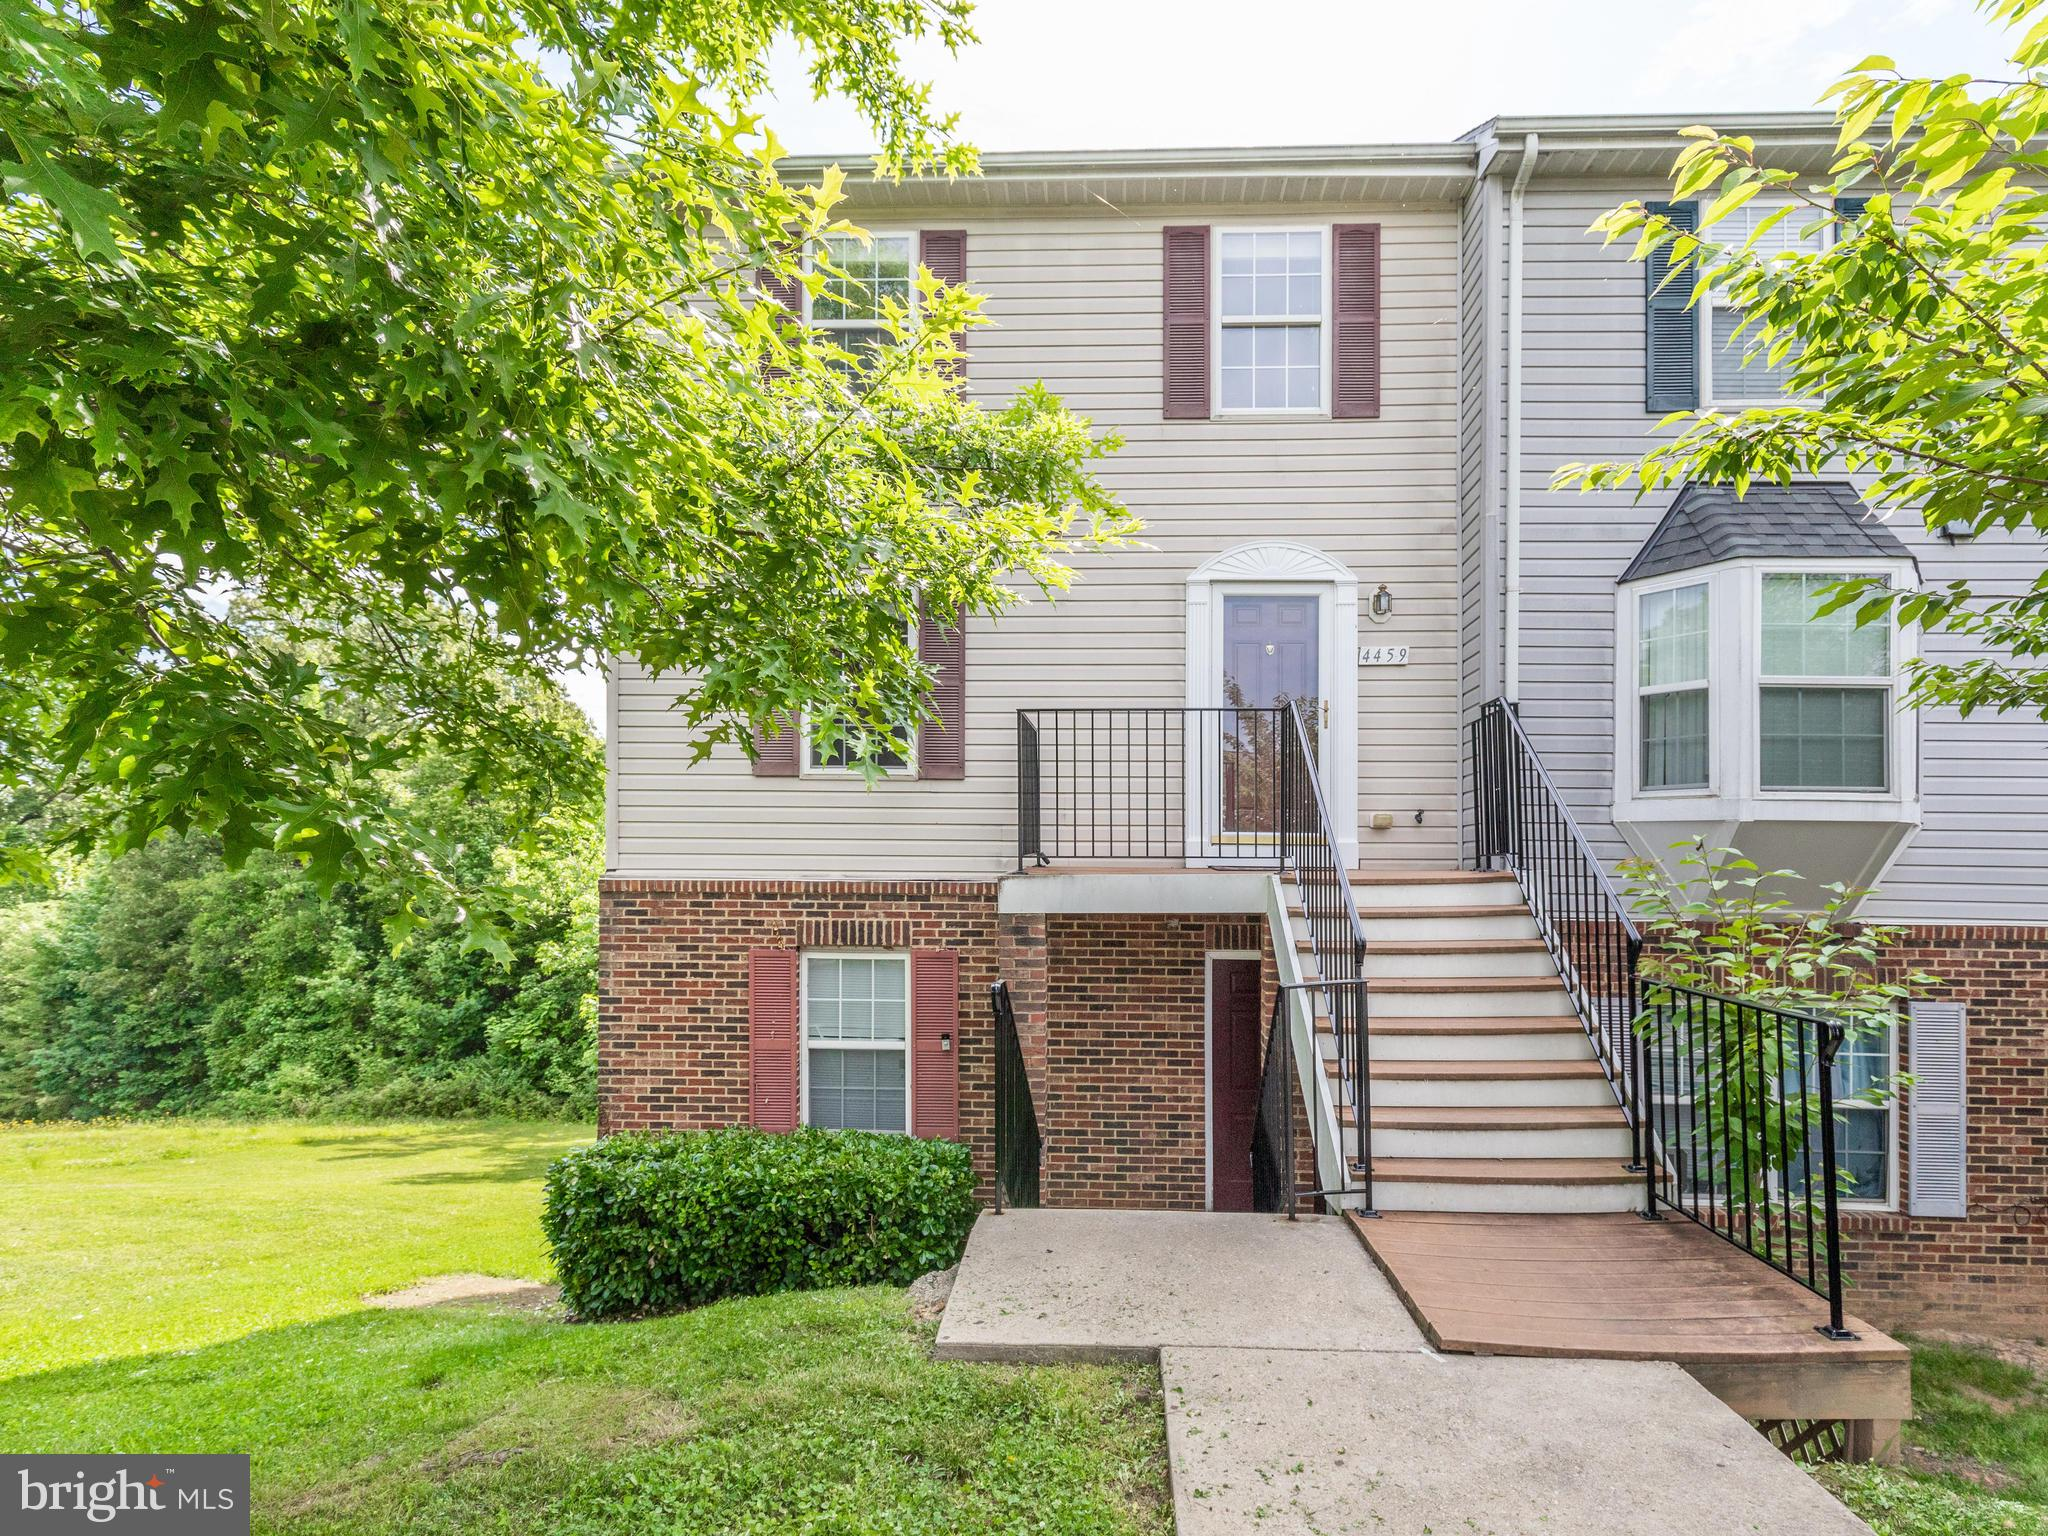 4459 BLUE HERON WAY, BLADENSBURG, MD 20710